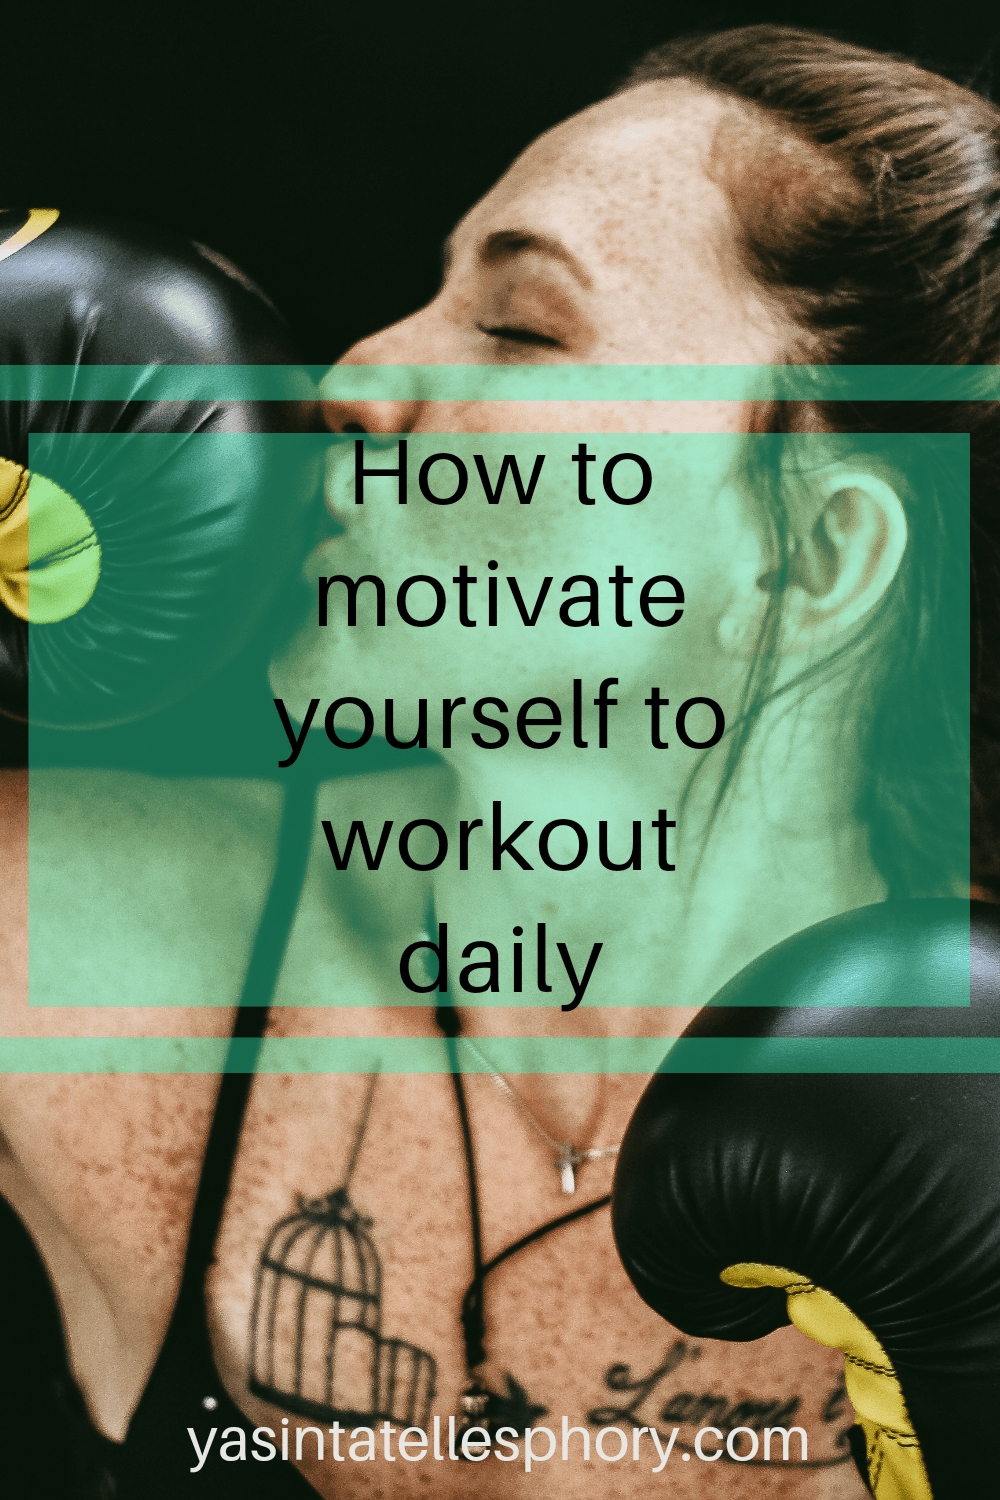 How to motivate yourself to workout daily